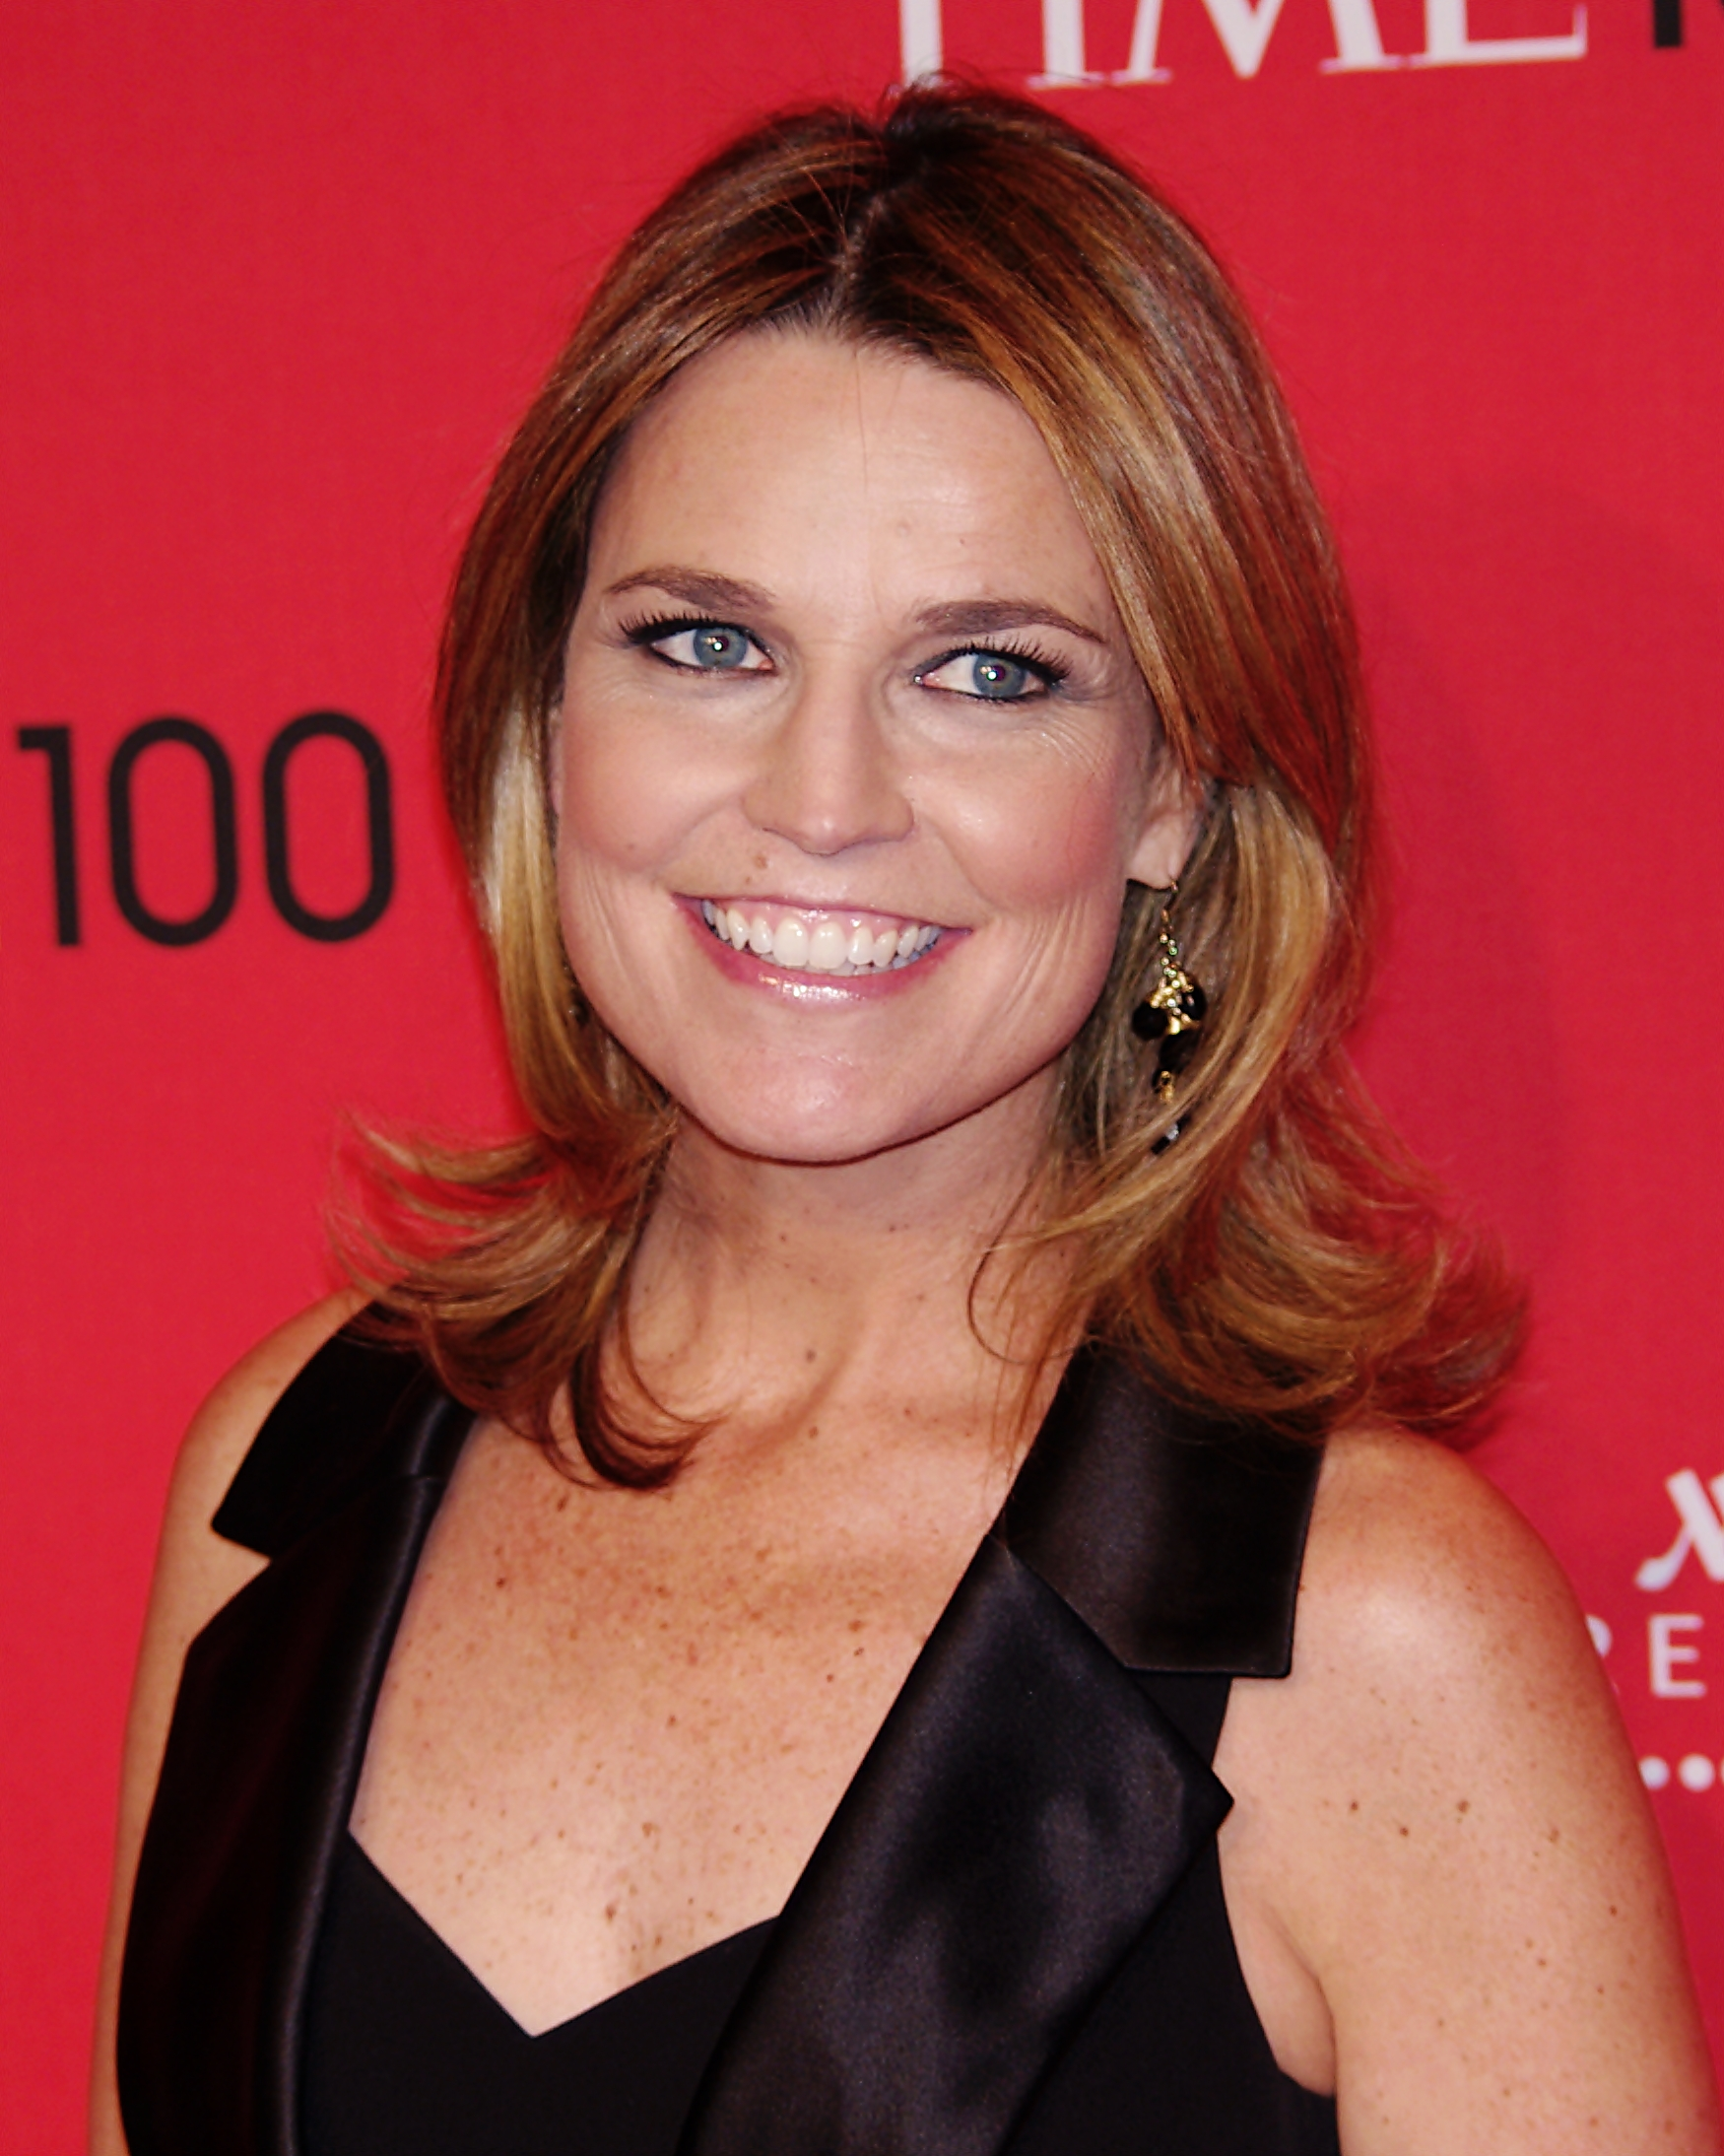 Savannah Guthrie Wikipedia